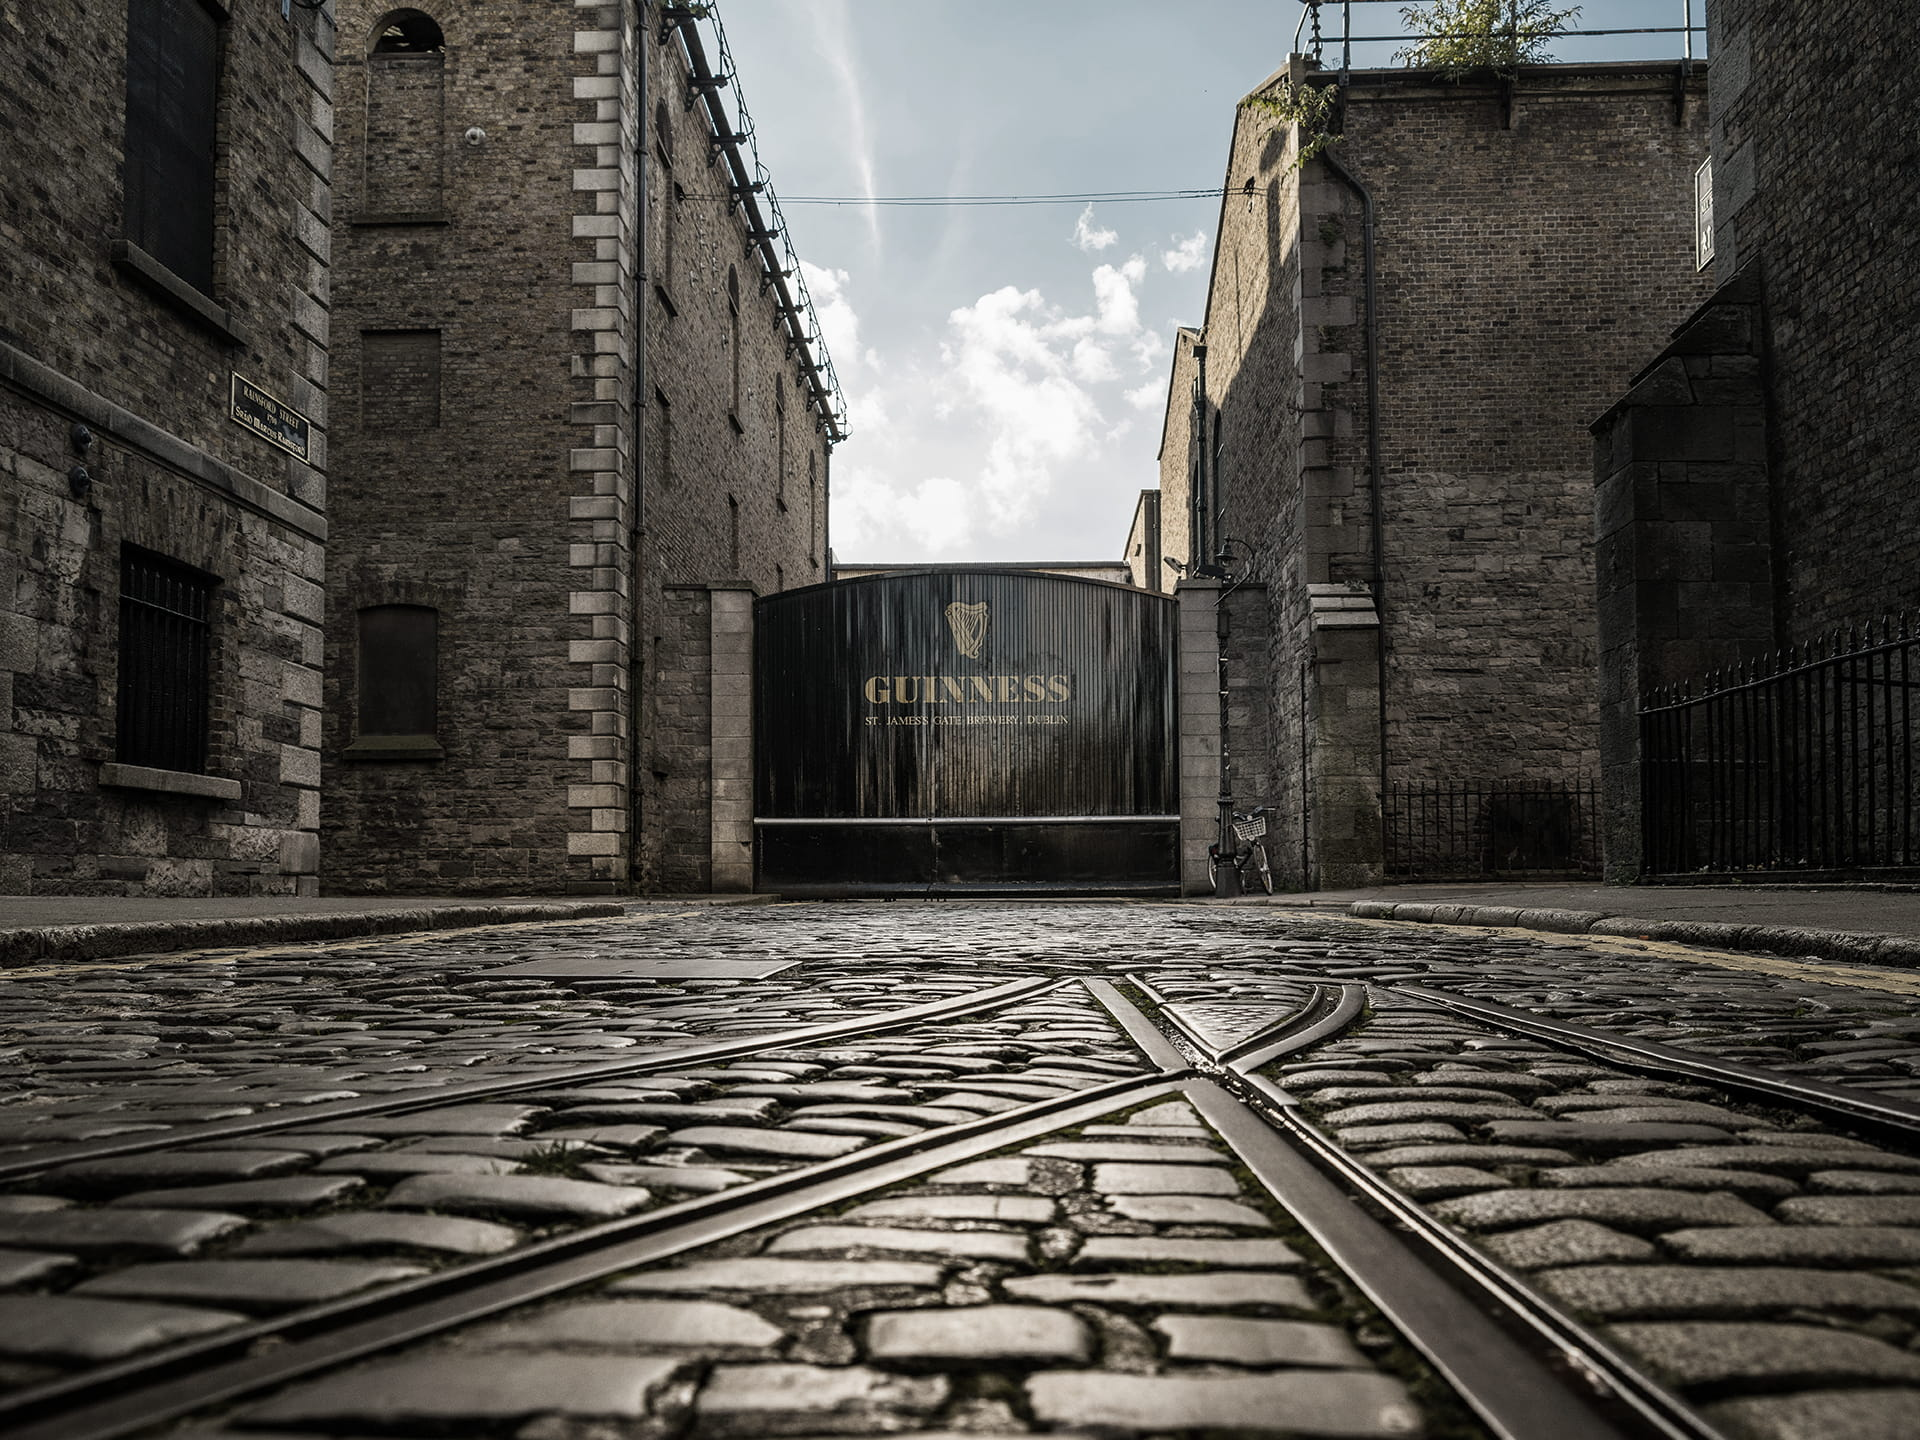 The Guiness Gates at the Guinness Storehouse